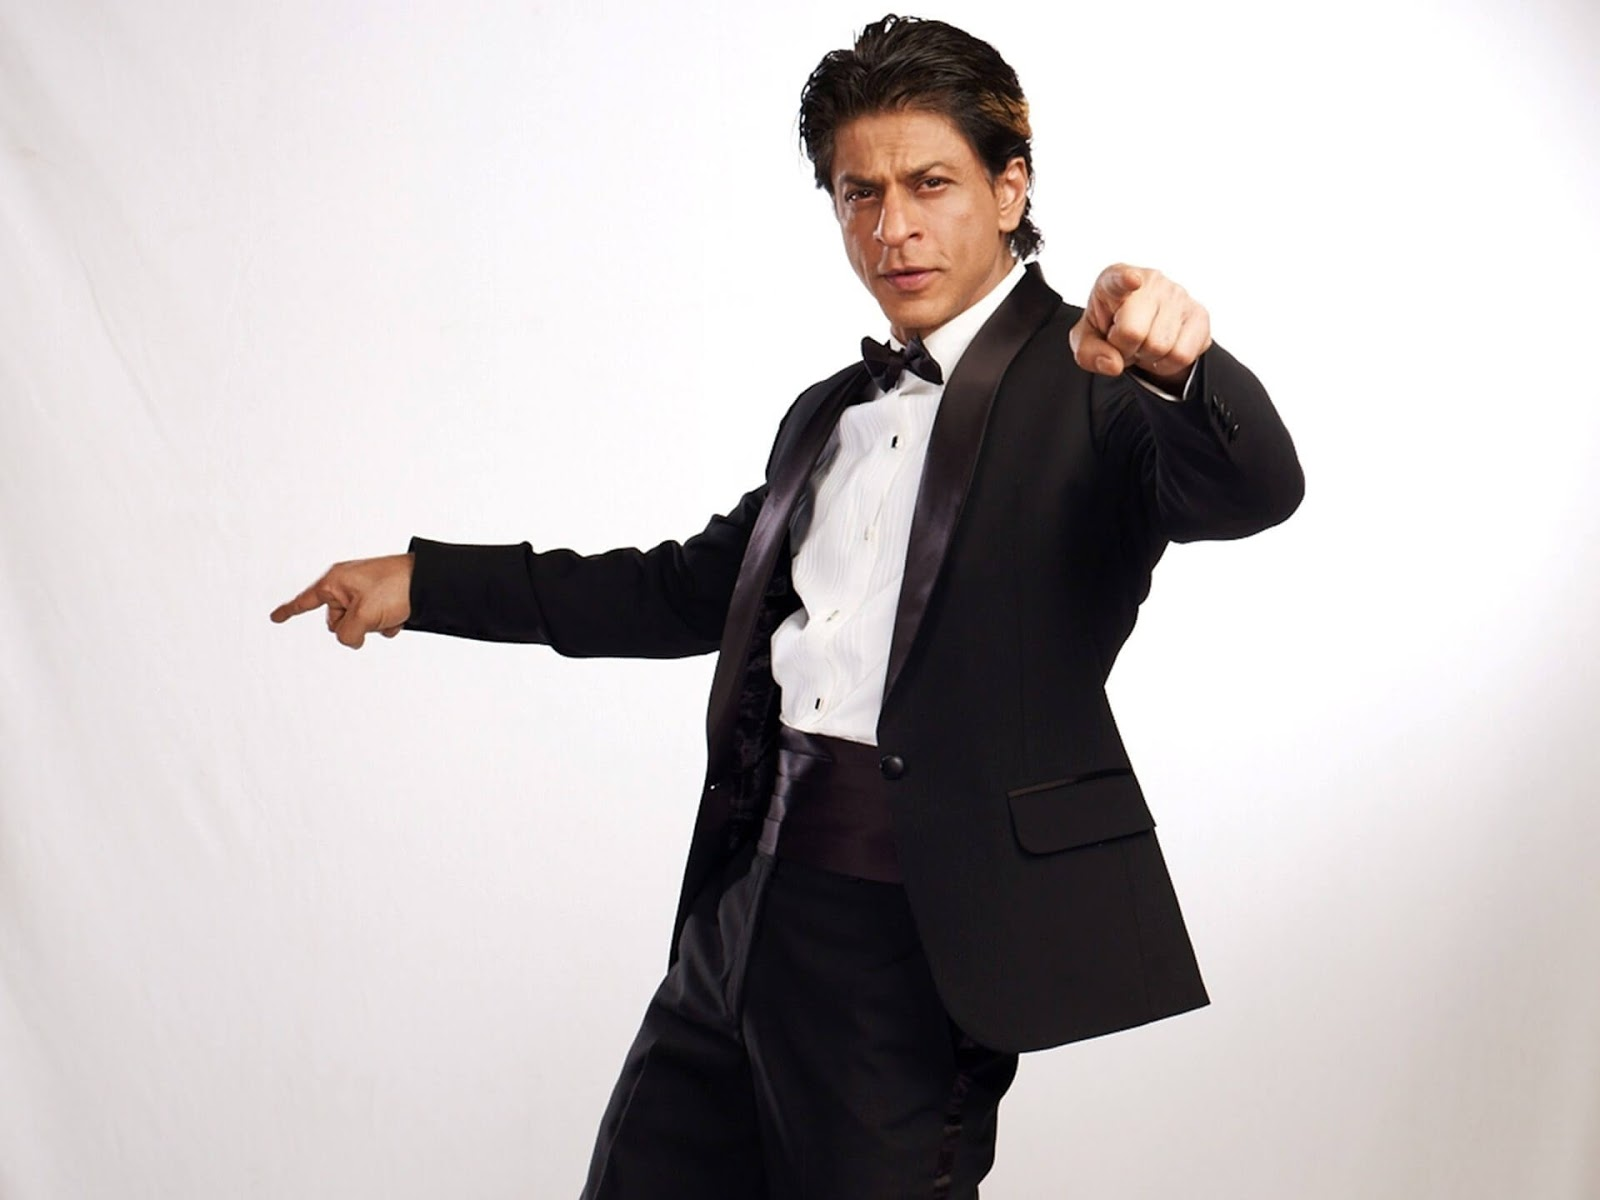 shahrukh khan latest hd wallpapers,srk photos,images gallery